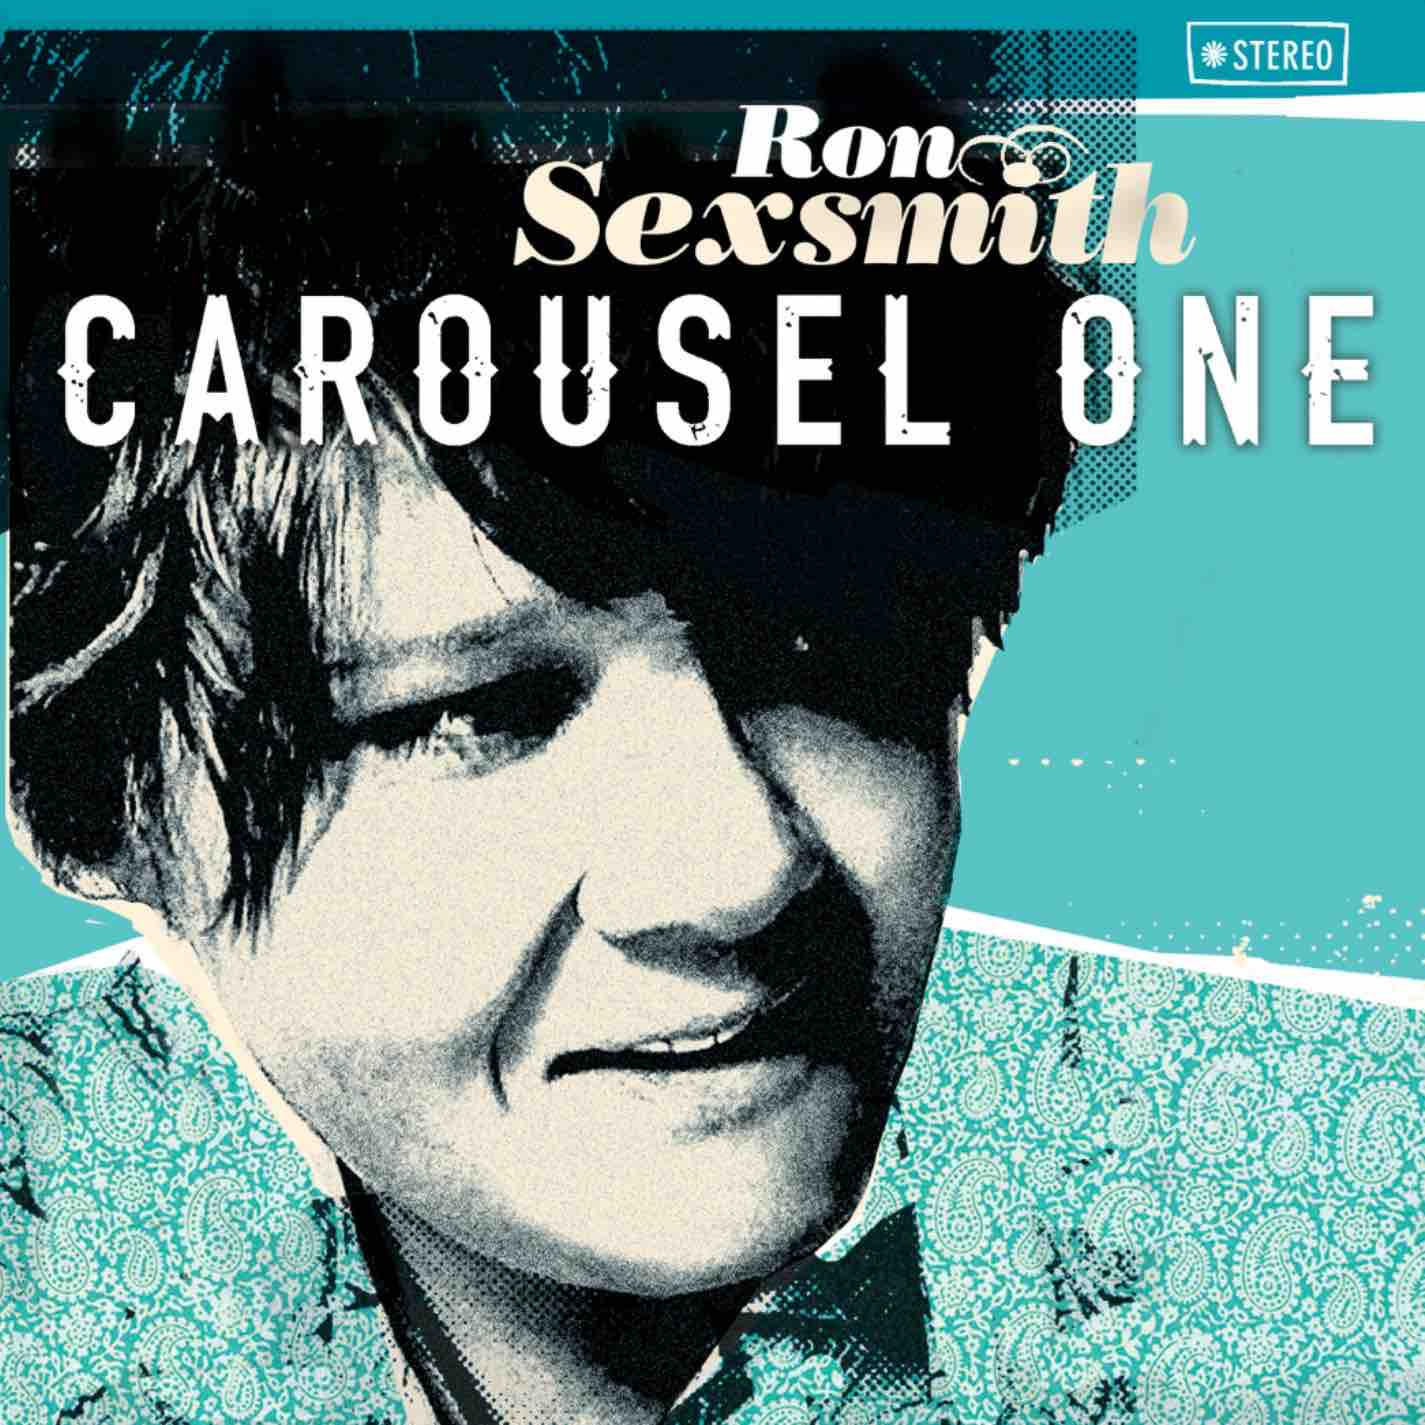 Ron Sexsmith - Carousel One album art